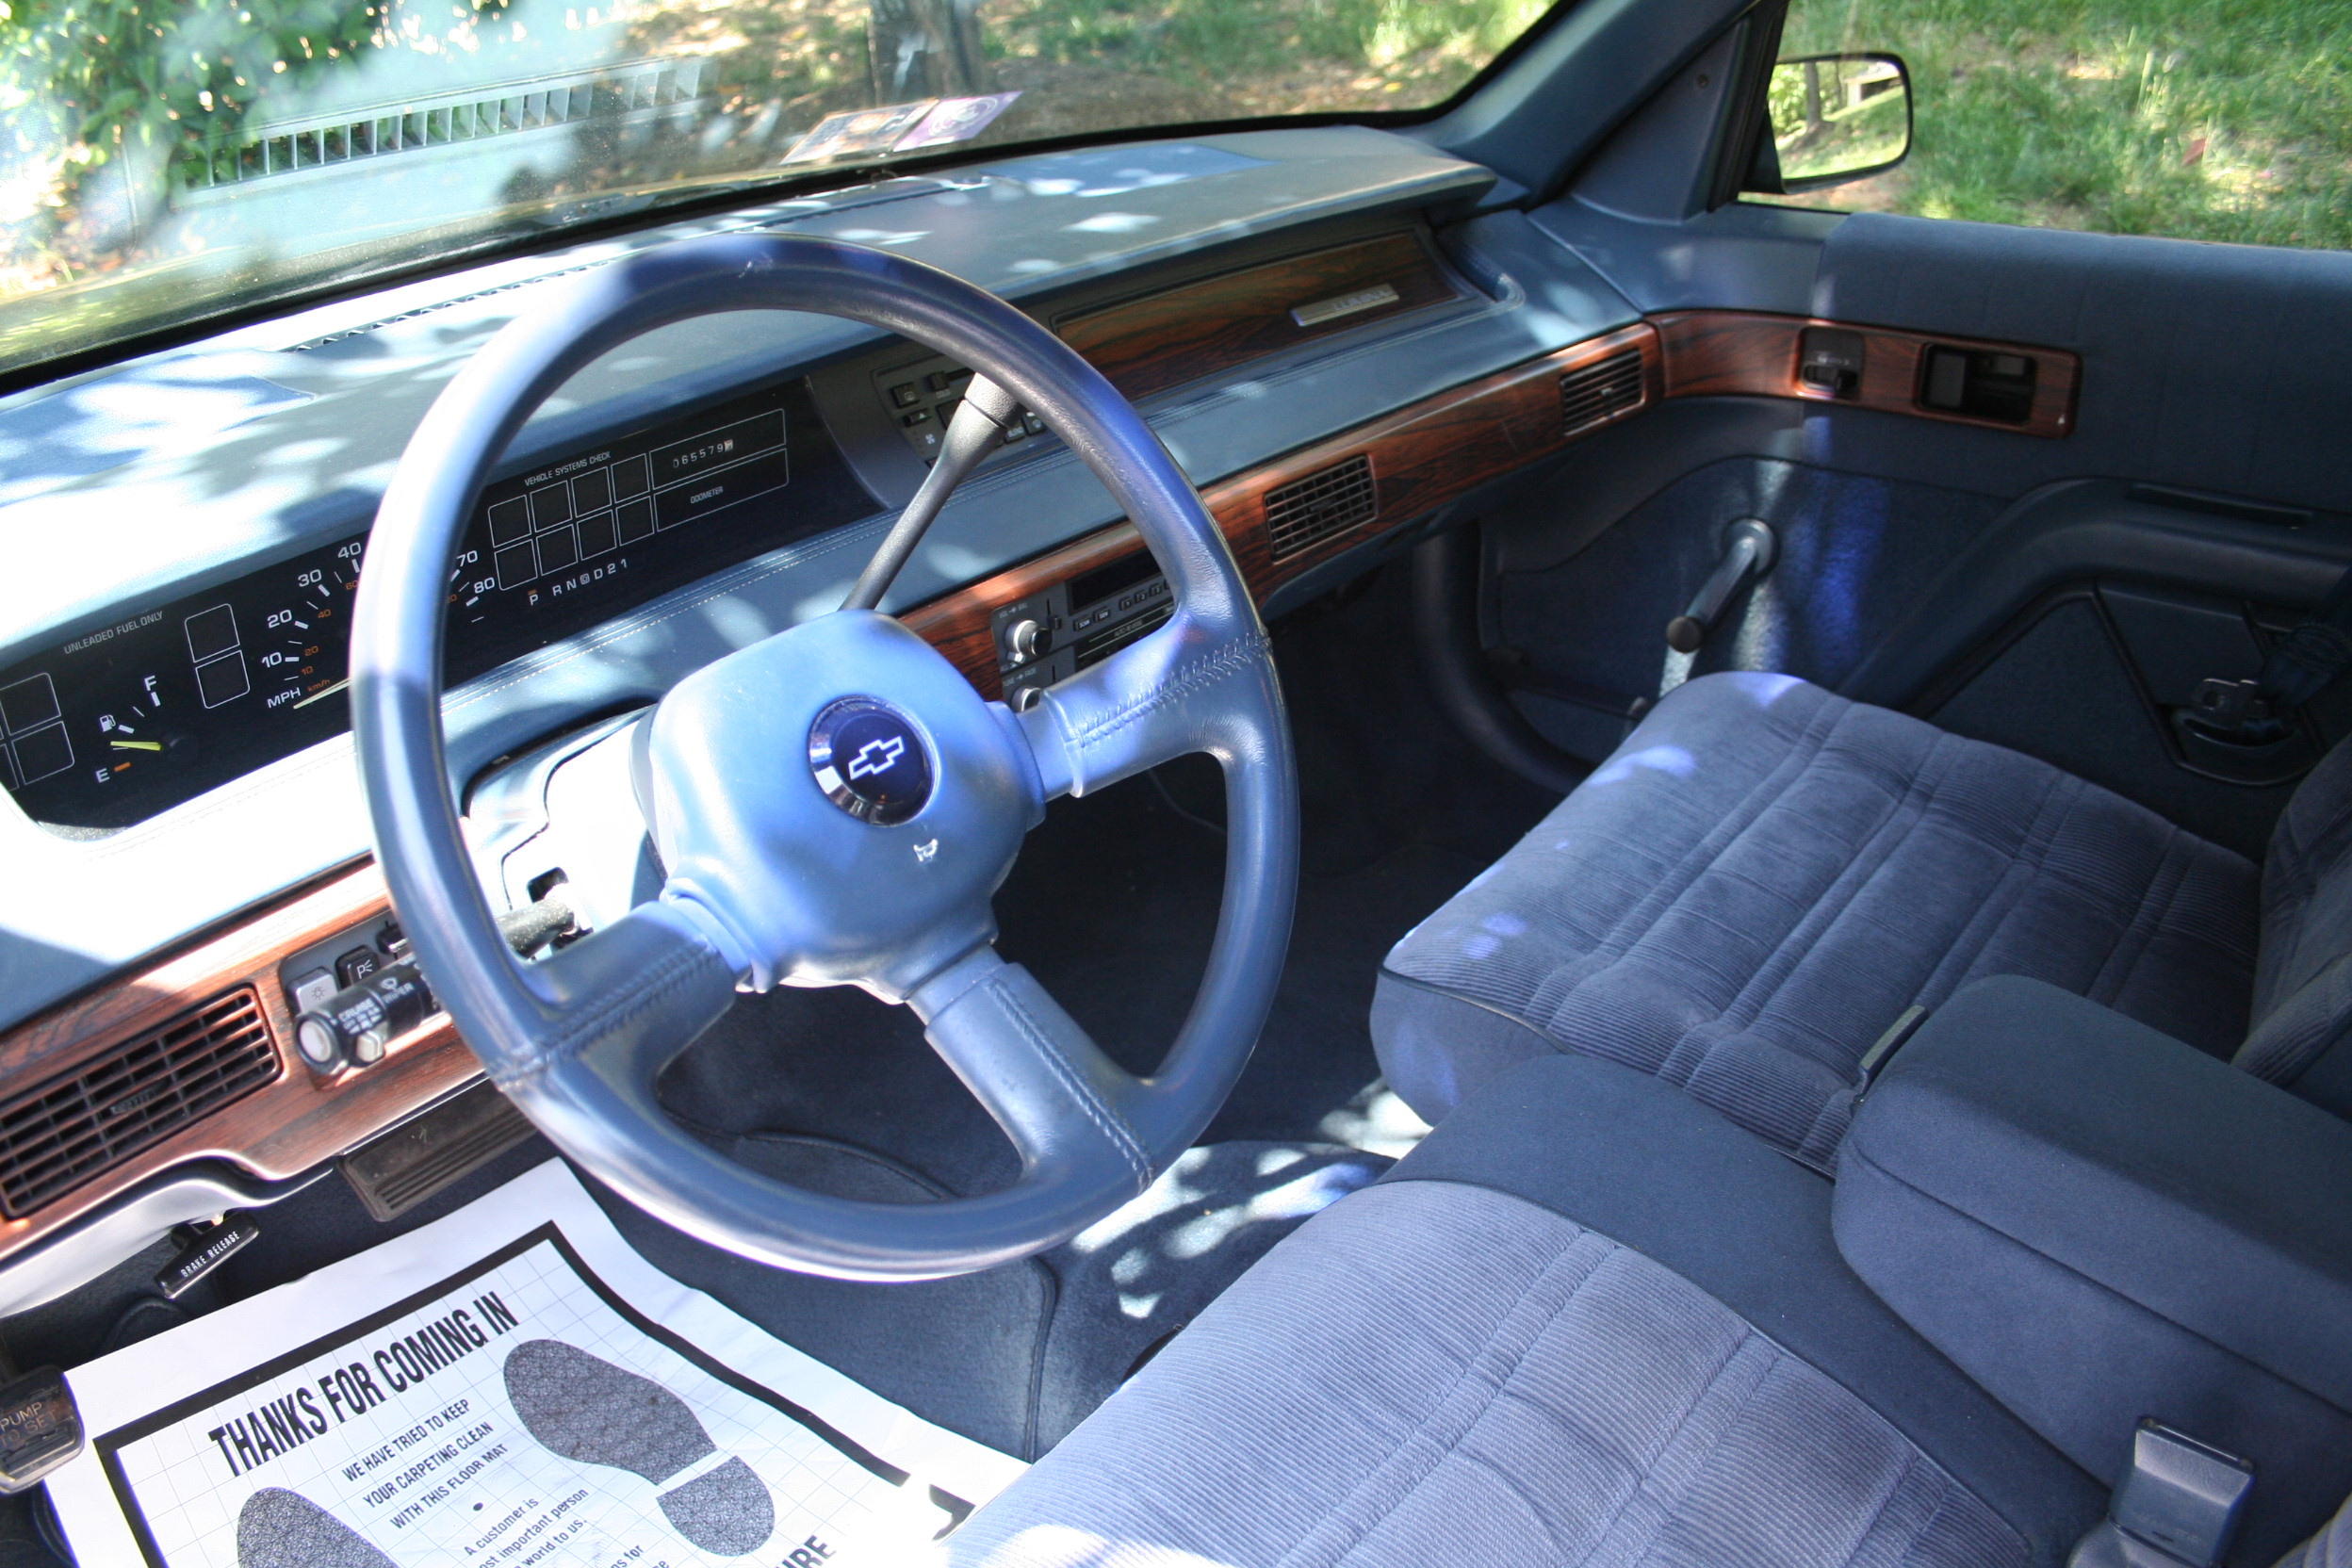 Chevrolet Lumina interior #3